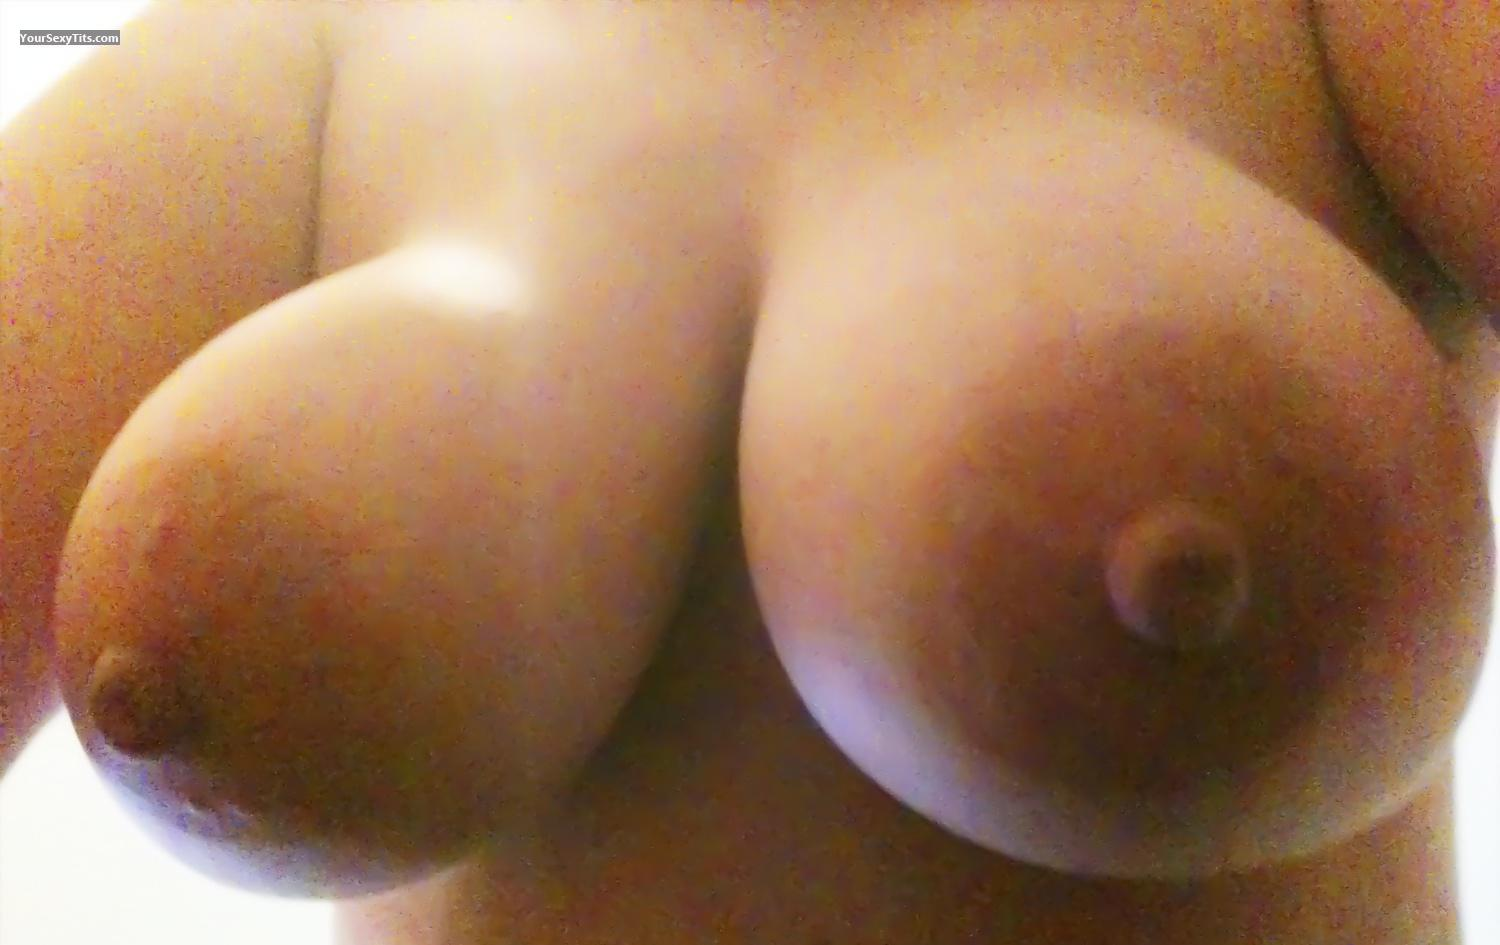 Tit Flash: Big Tits By IPhone - TexasTyme from United States